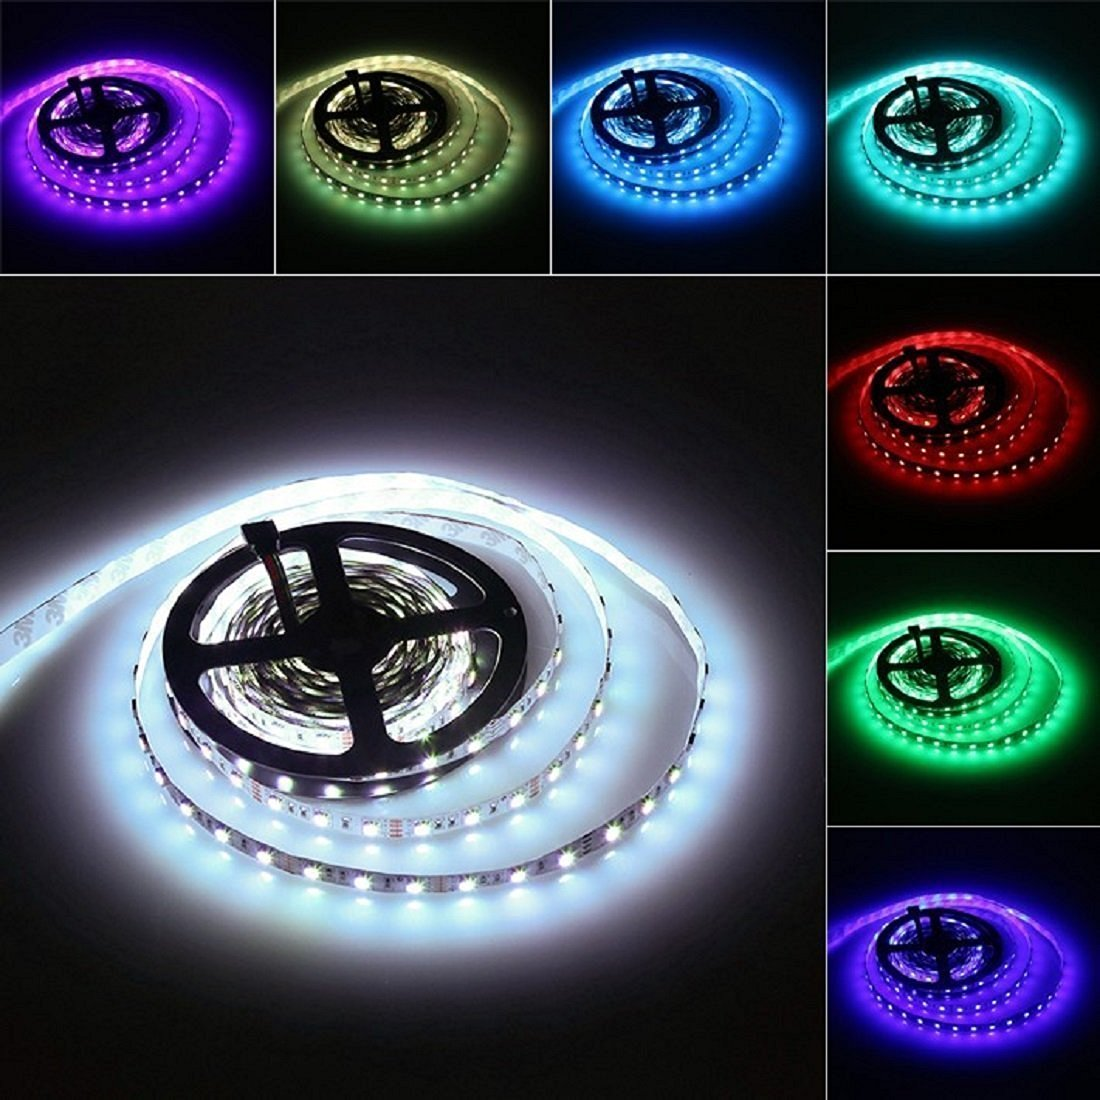 5M 5050 SMD 300 Leds RGB LED Strip Lights,12V Flexible LED Tape, Multi-colors, 300 LEDs, Non-waterproof, Light Strips, Color Changing, Pack of 16.4ft/5m Strips (non-waterproof, 5M 60Led/M)